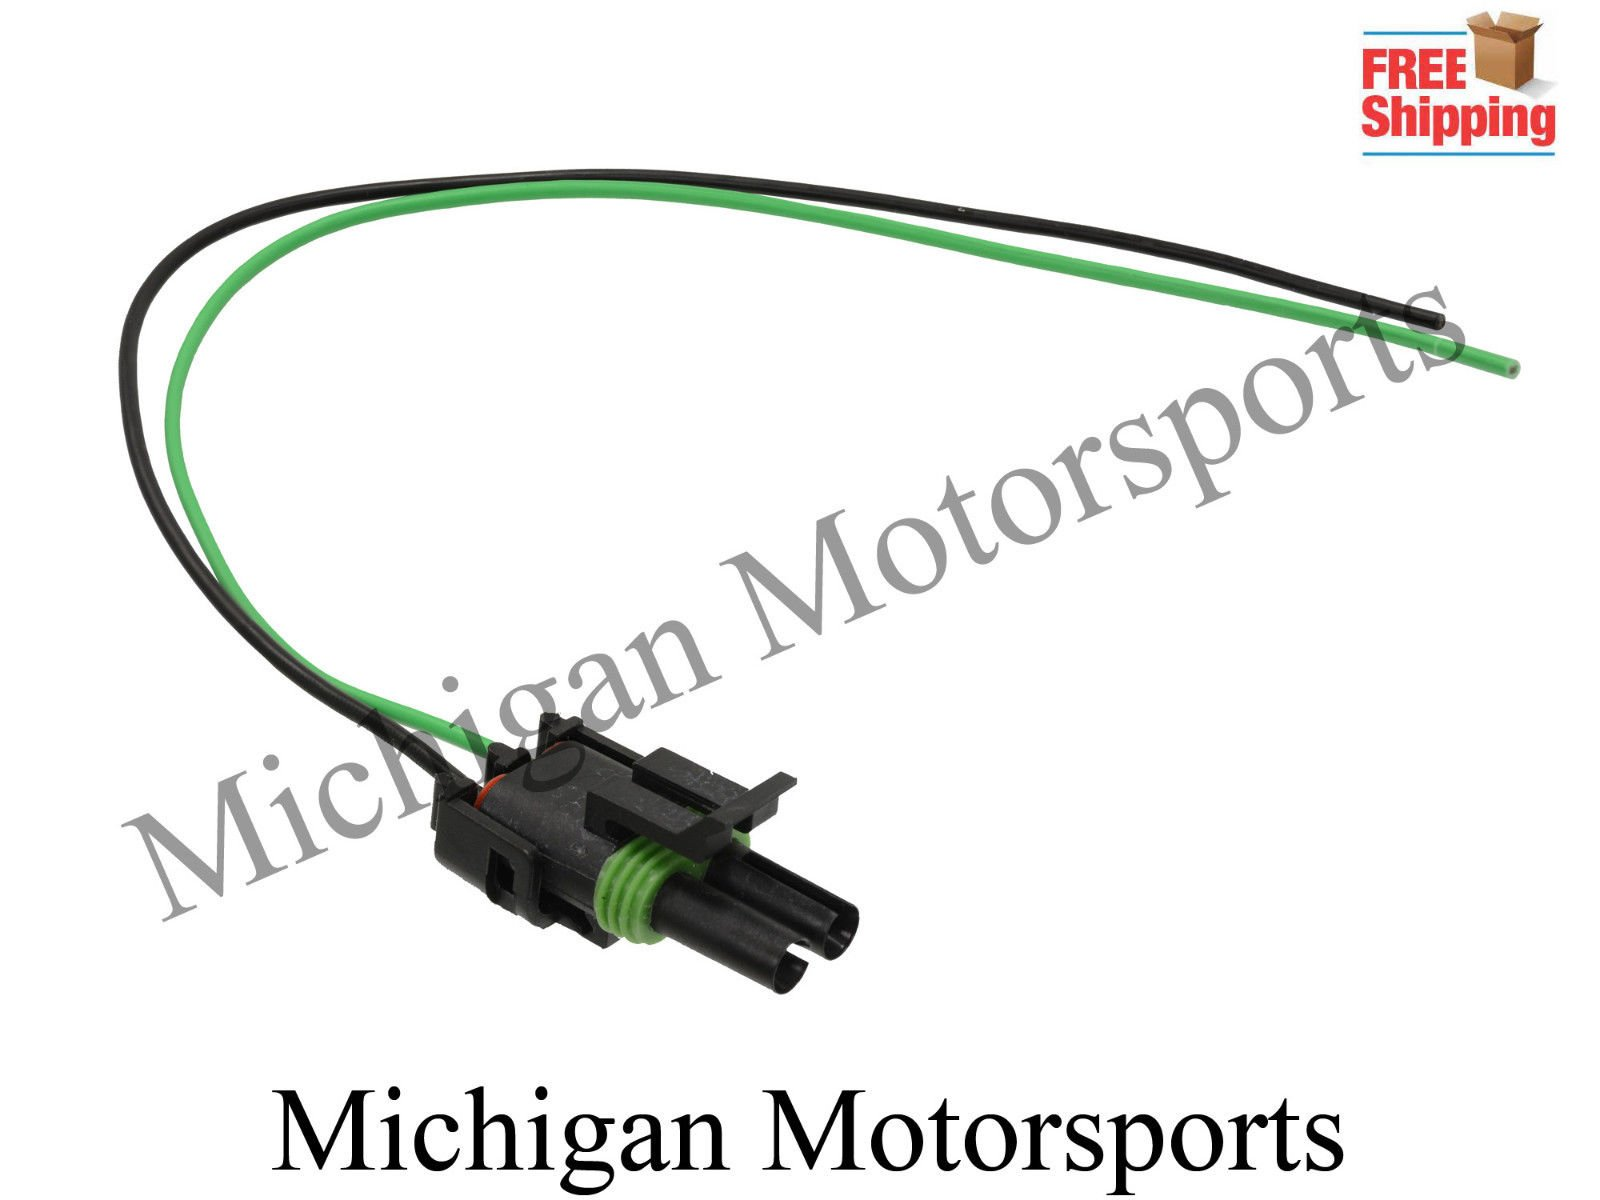 Michigan Motorsports T56 Manual Transmission Wire Harness Connector Pigtail Back Up Reverse